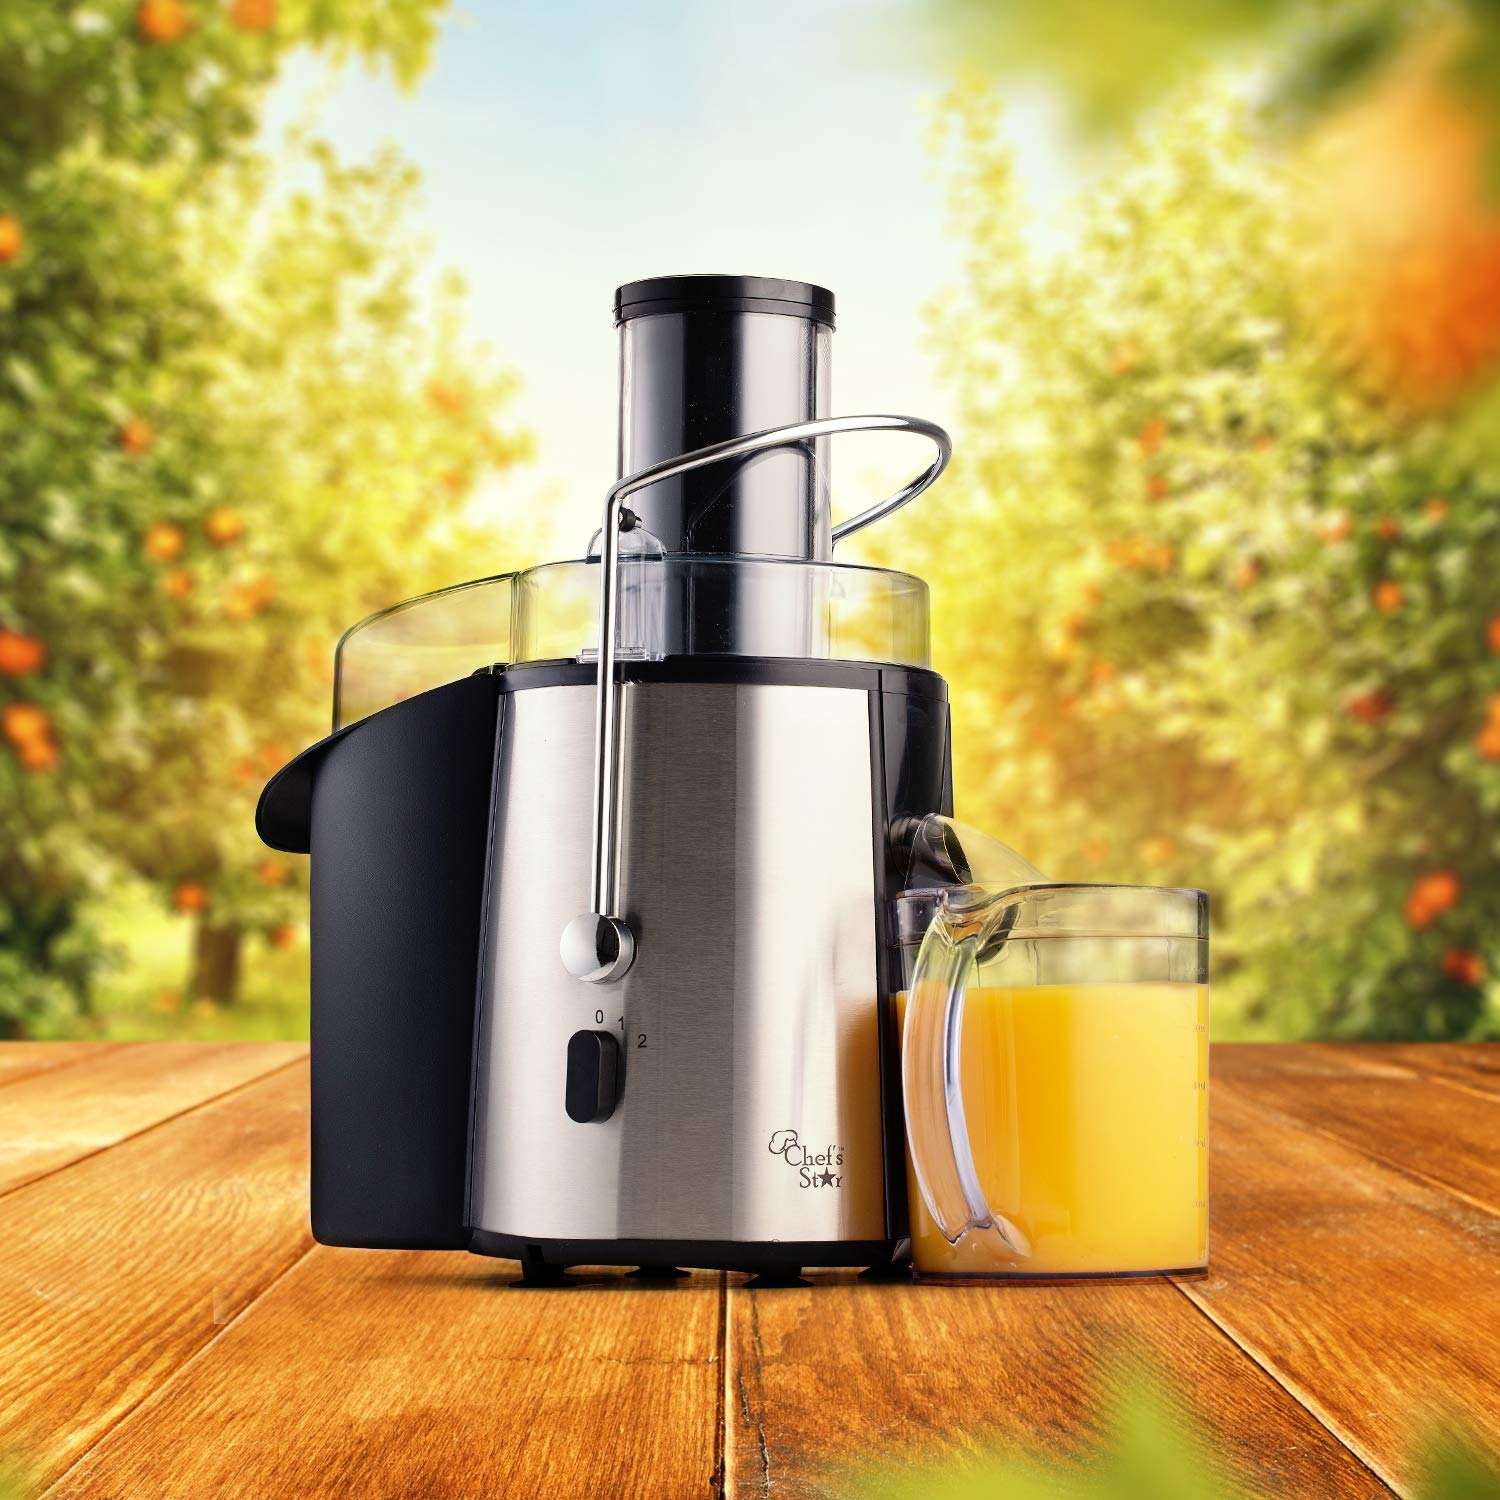 Amazon.com: Chef s Star juc700 Juicer – Extractor de jugo ...